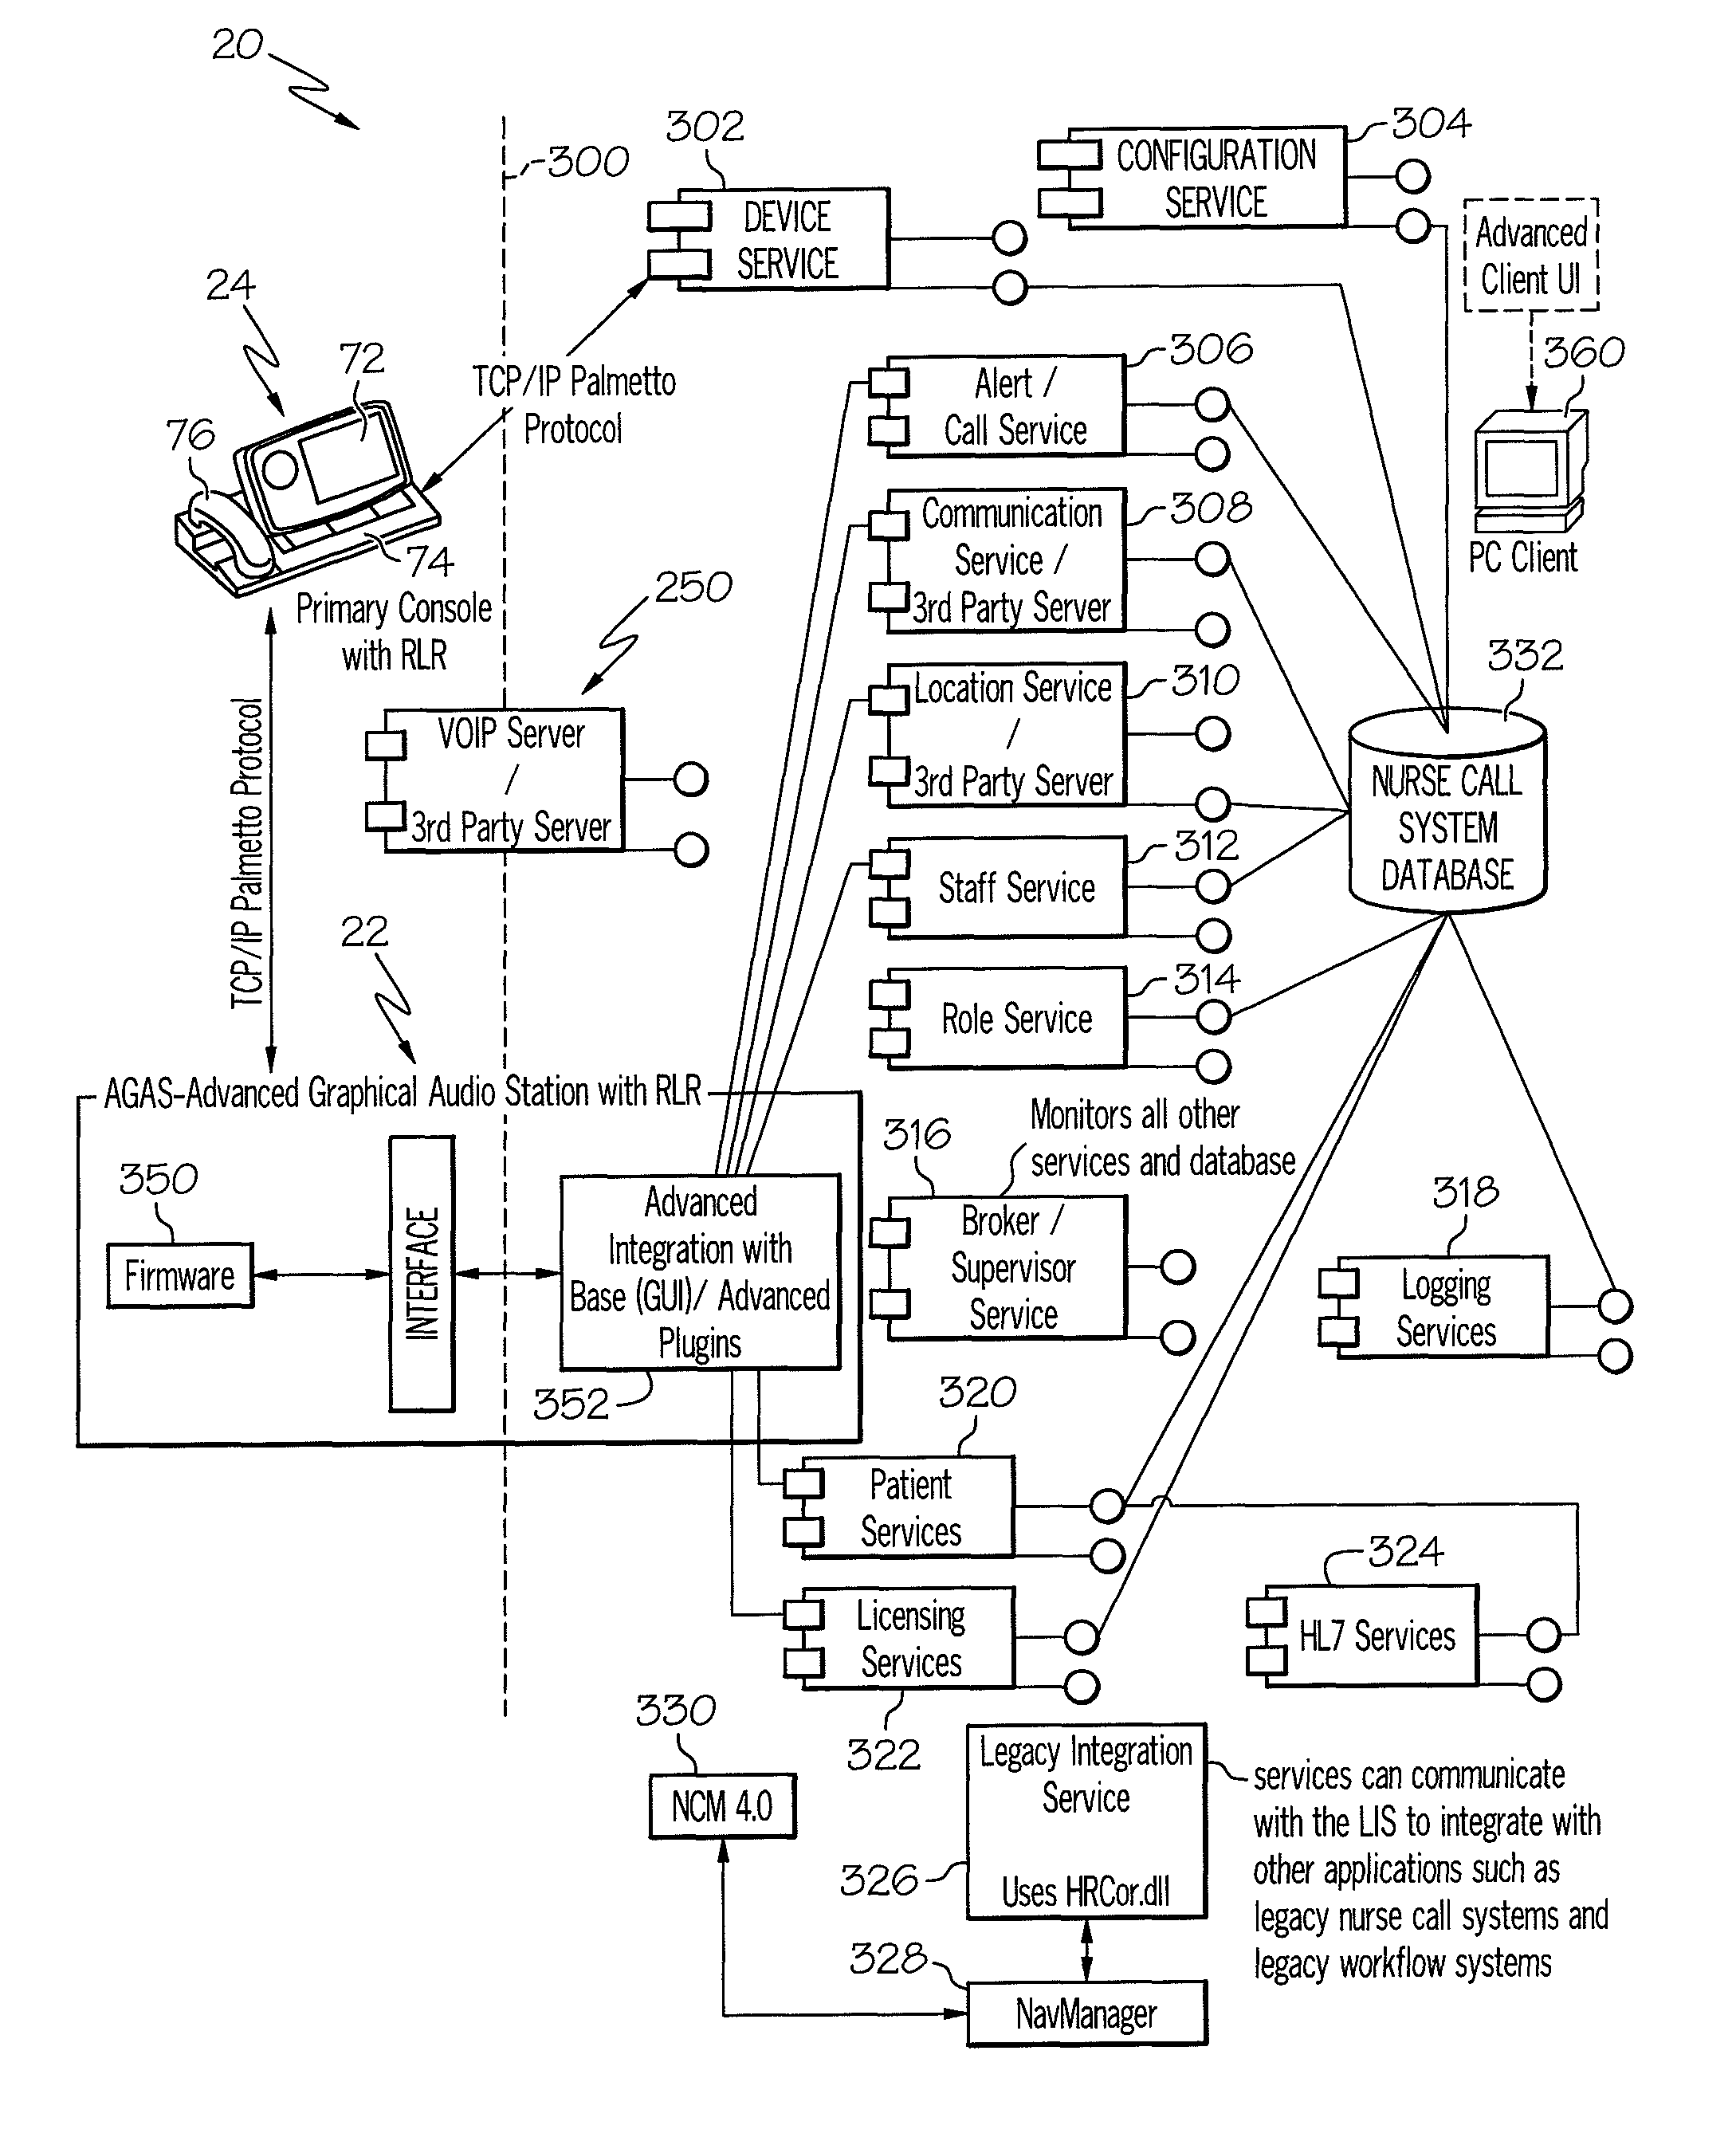 Nurse Call System Wiring Diagram : Nurse call system wiring diagram get free image